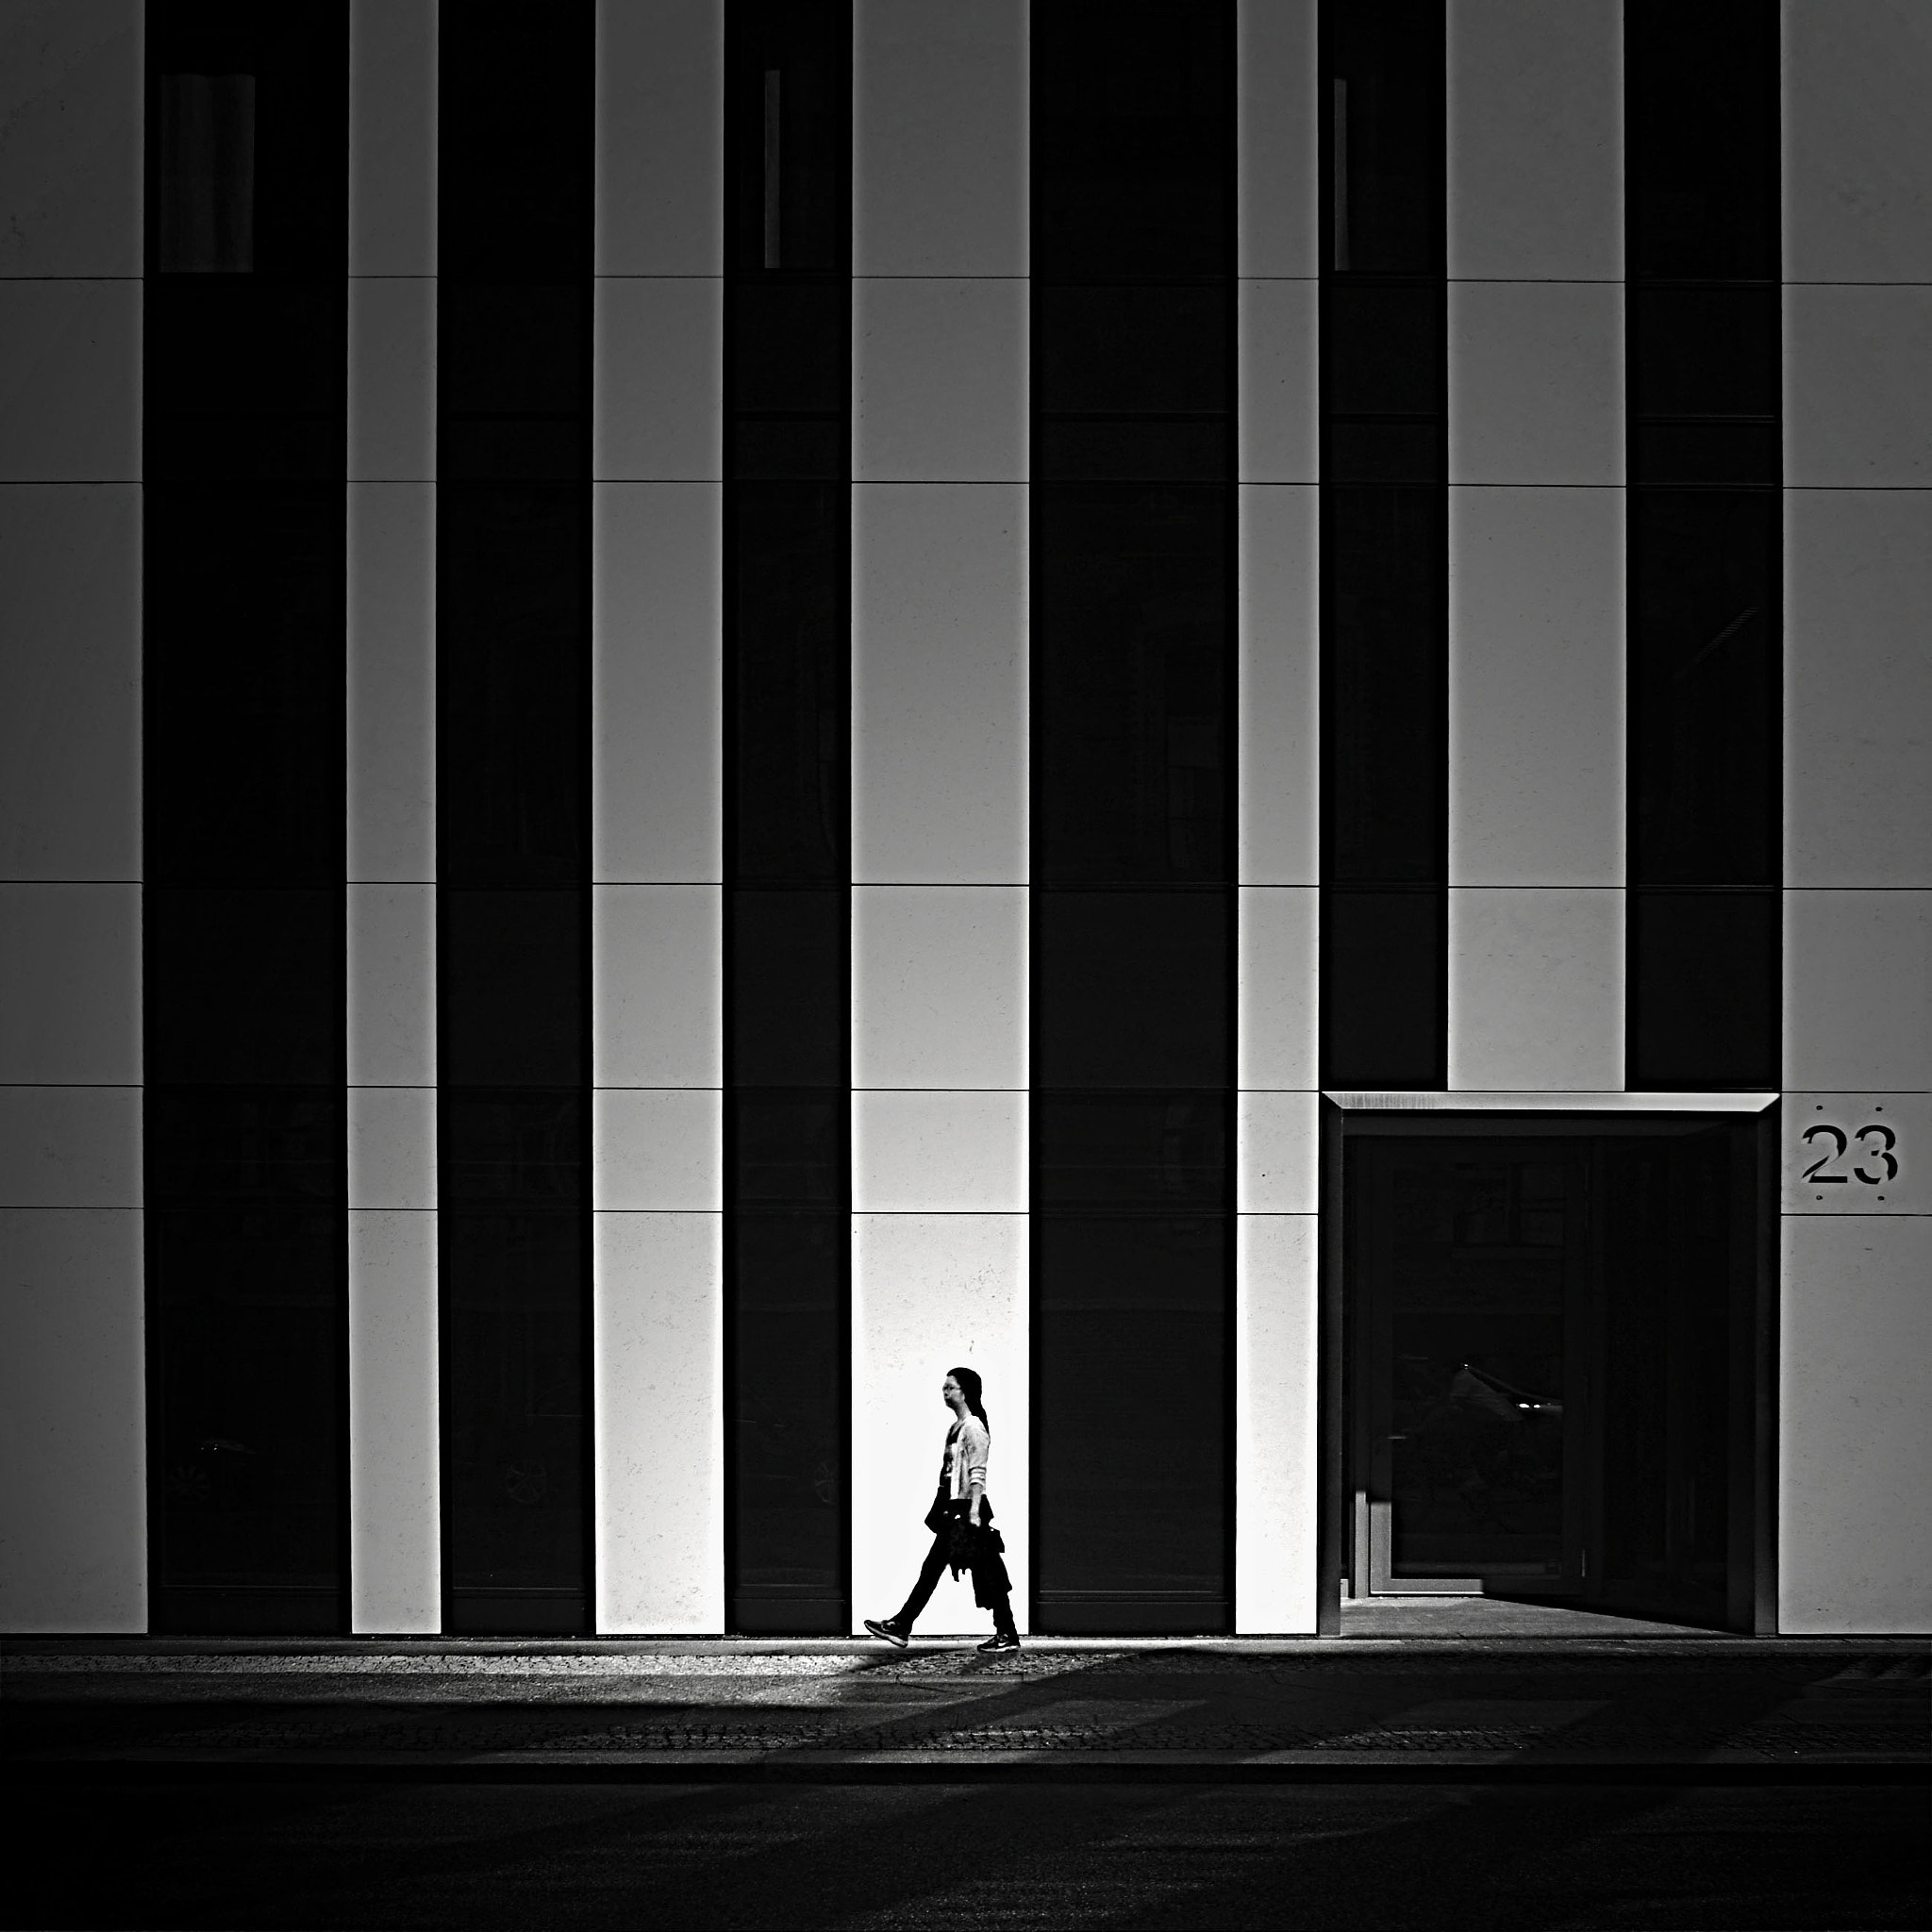 Photograph barcode by Michael Köster on 500px